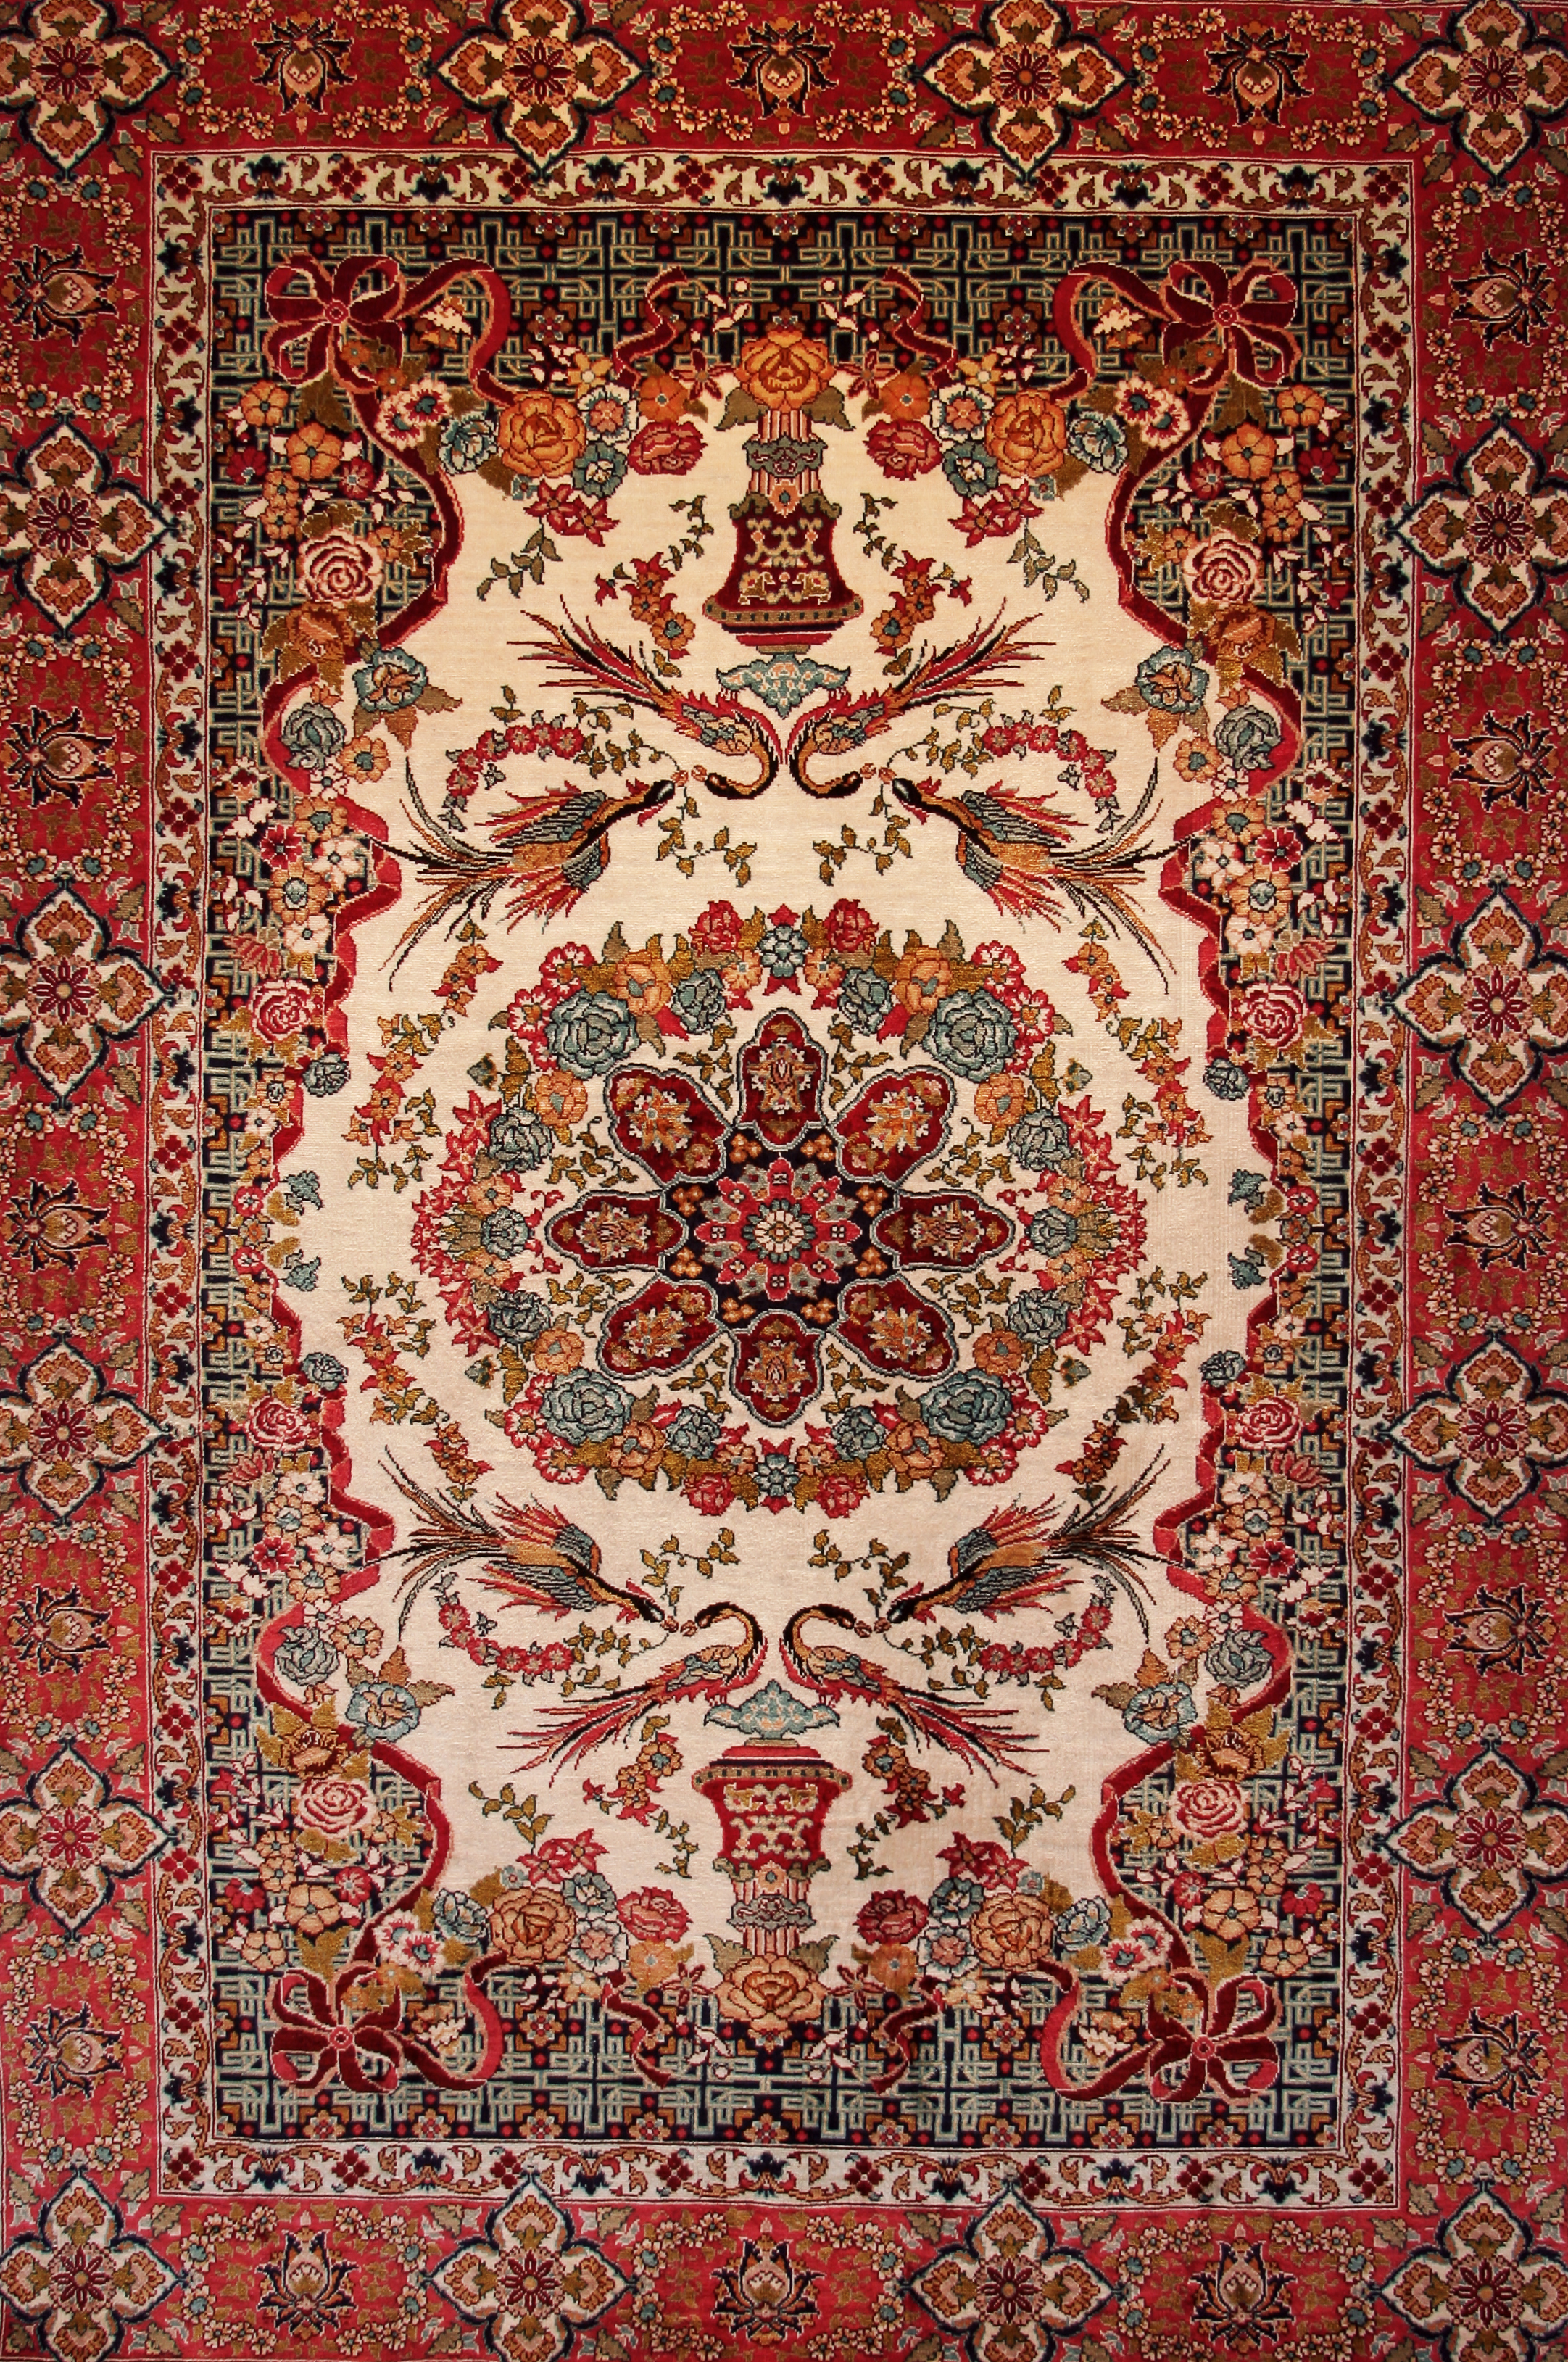 Silk Rug Cleaning NYC – Cleaning